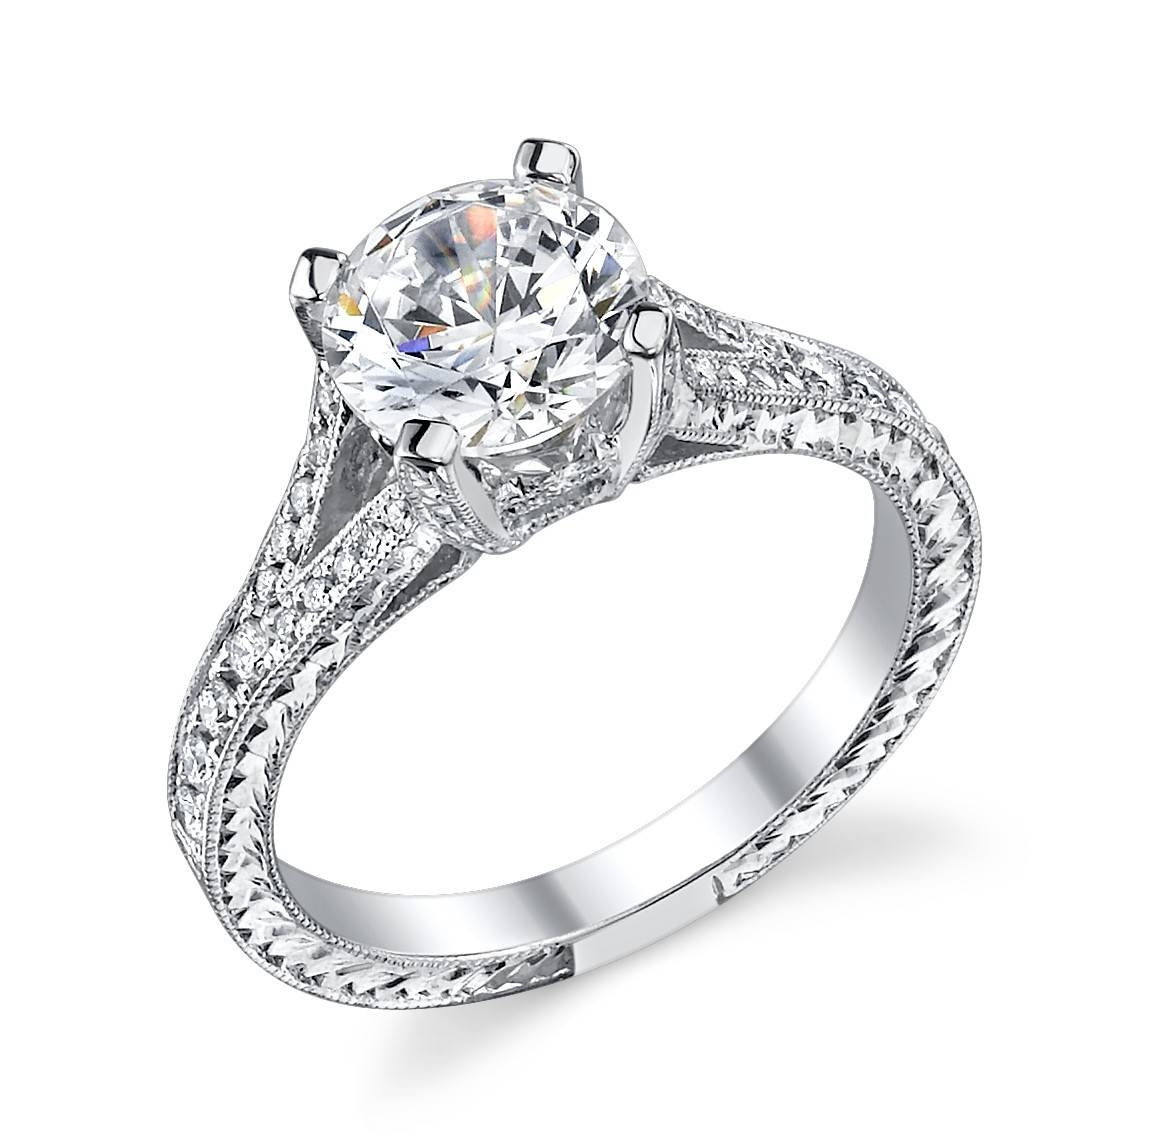 Engagement Ring Settings, Miscellaneous Design For Different Inside Vintage Wedding Rings Settings (View 8 of 15)